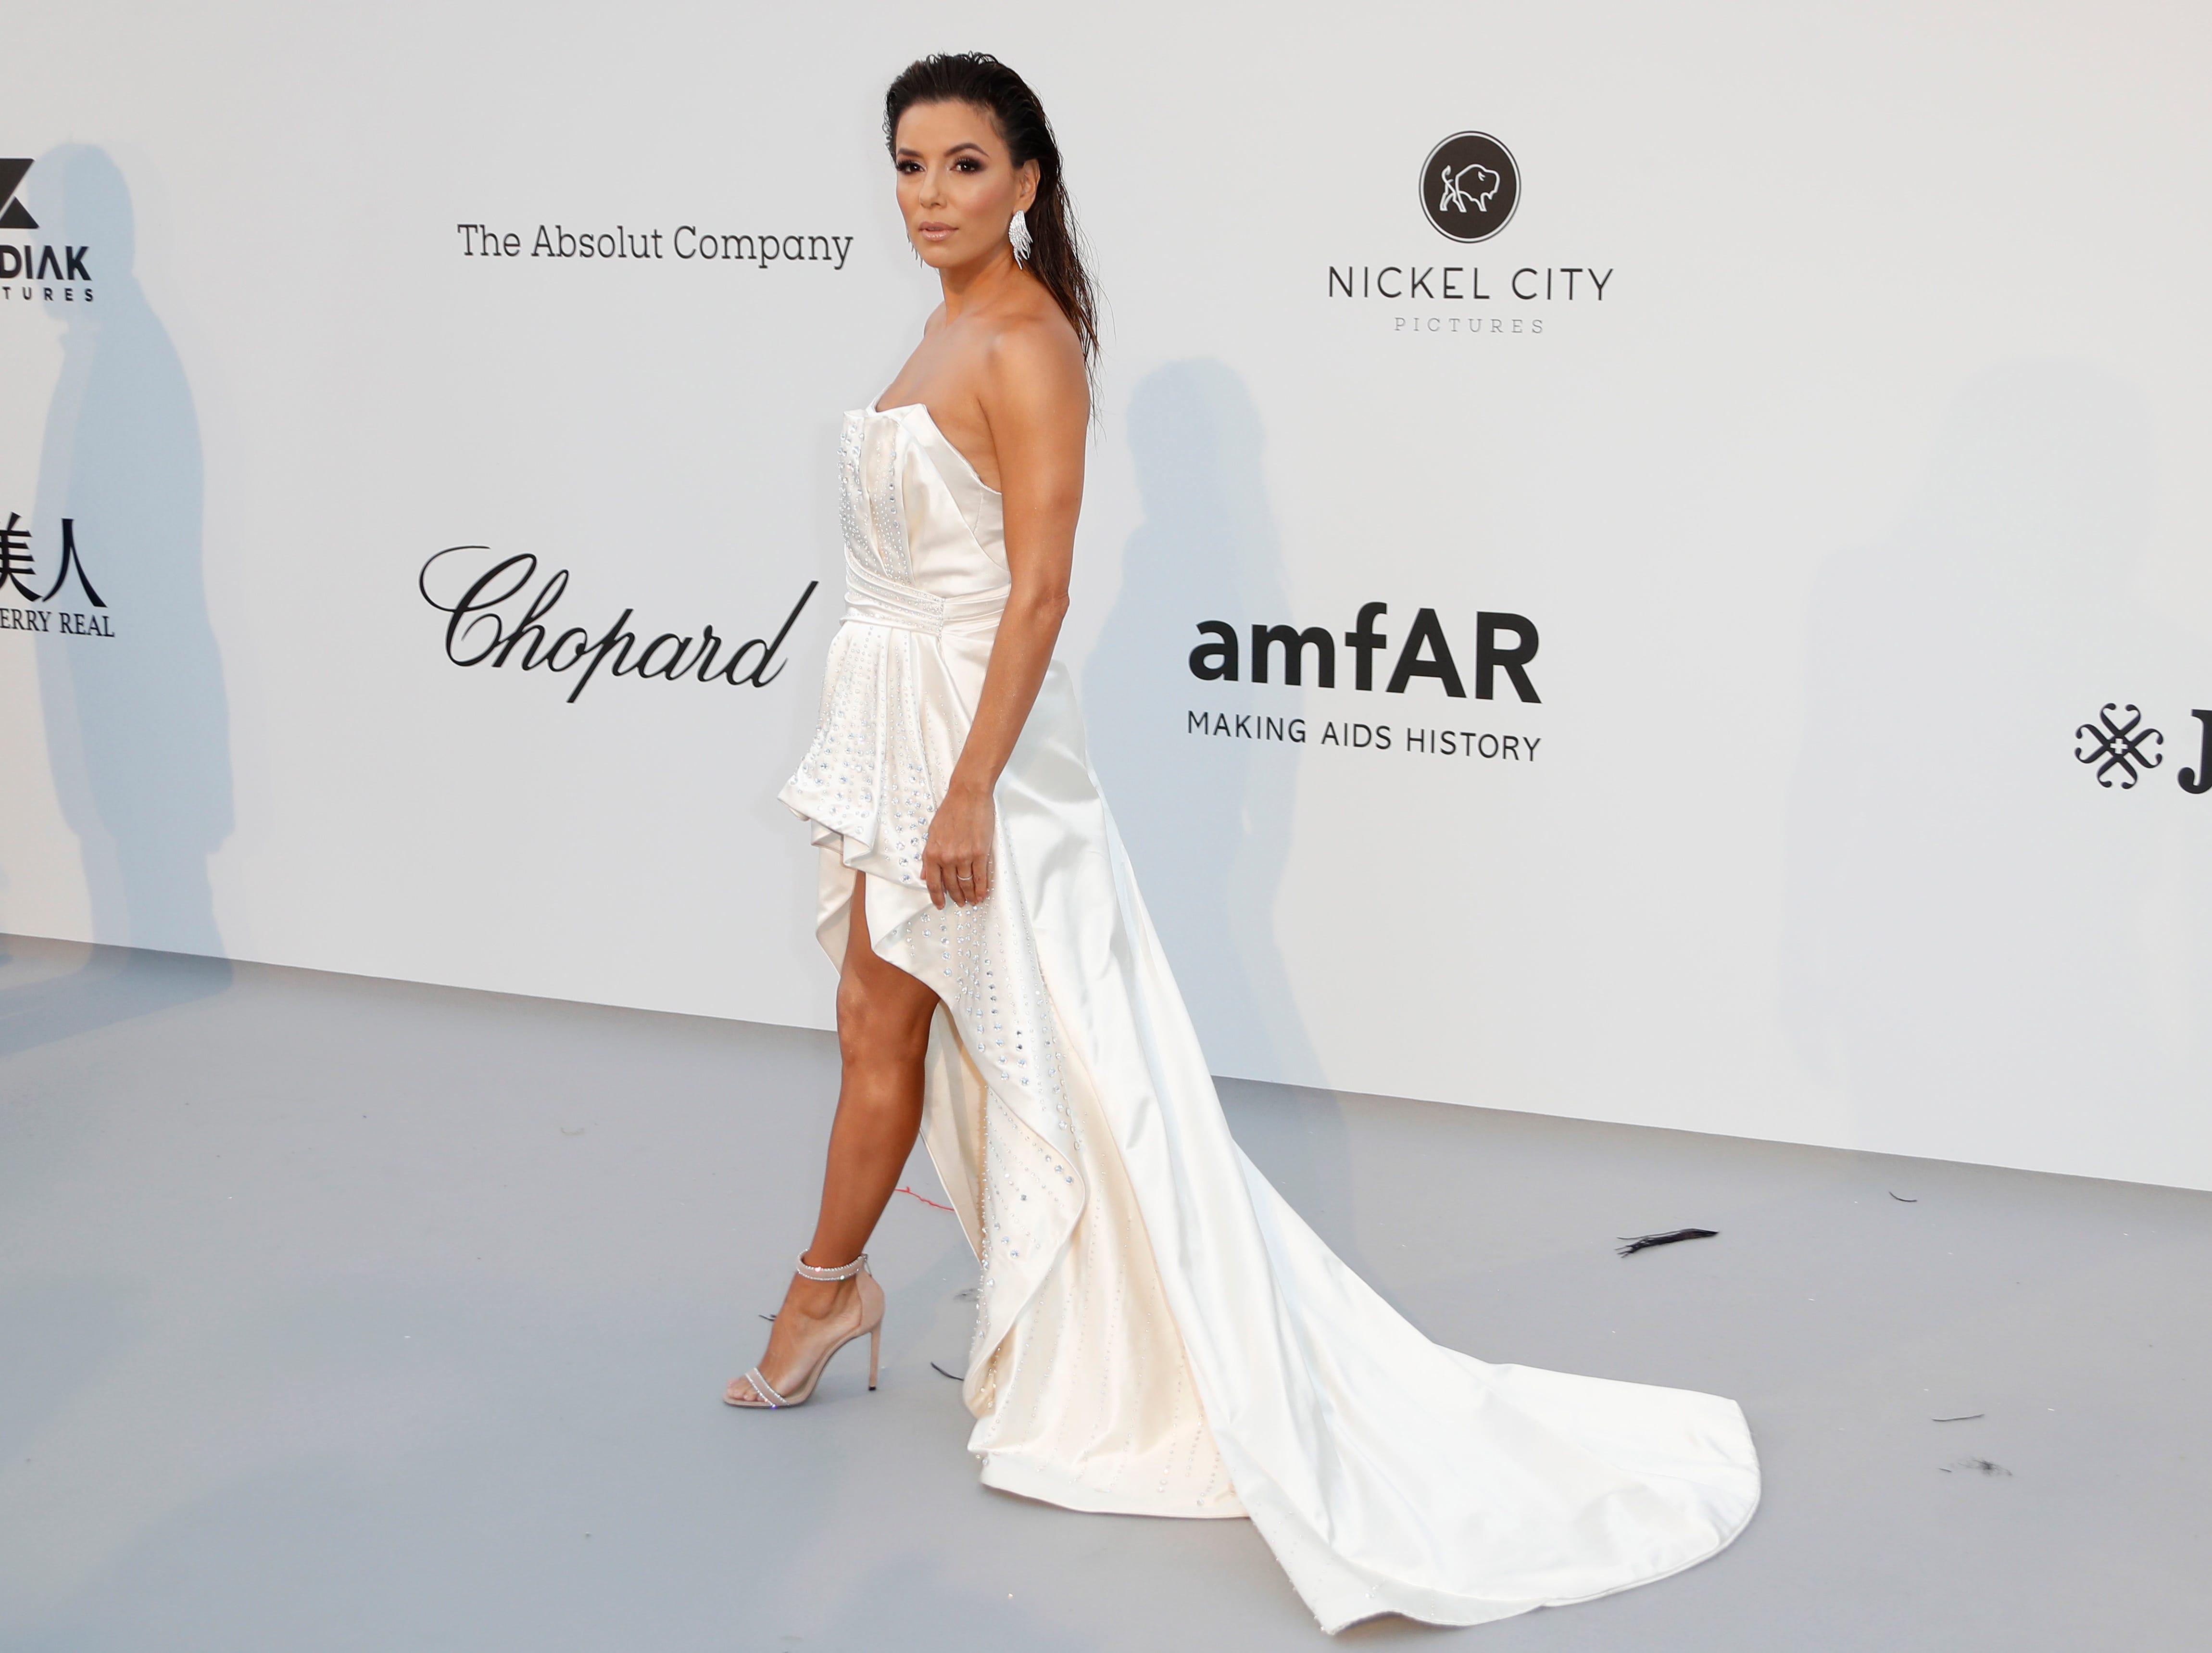 epa07595203 US actress Eva Longoria attends the Cinema Against AIDS amfAR gala 2019 held at the Hotel du Cap, Eden Roc in Cap d'Antibes, France, 23 May 2019, within the scope of the 72nd annual Cannes Film Festival that runs from 14 to 25 May.  EPA-EFE/SEBASTIEN NOGIER